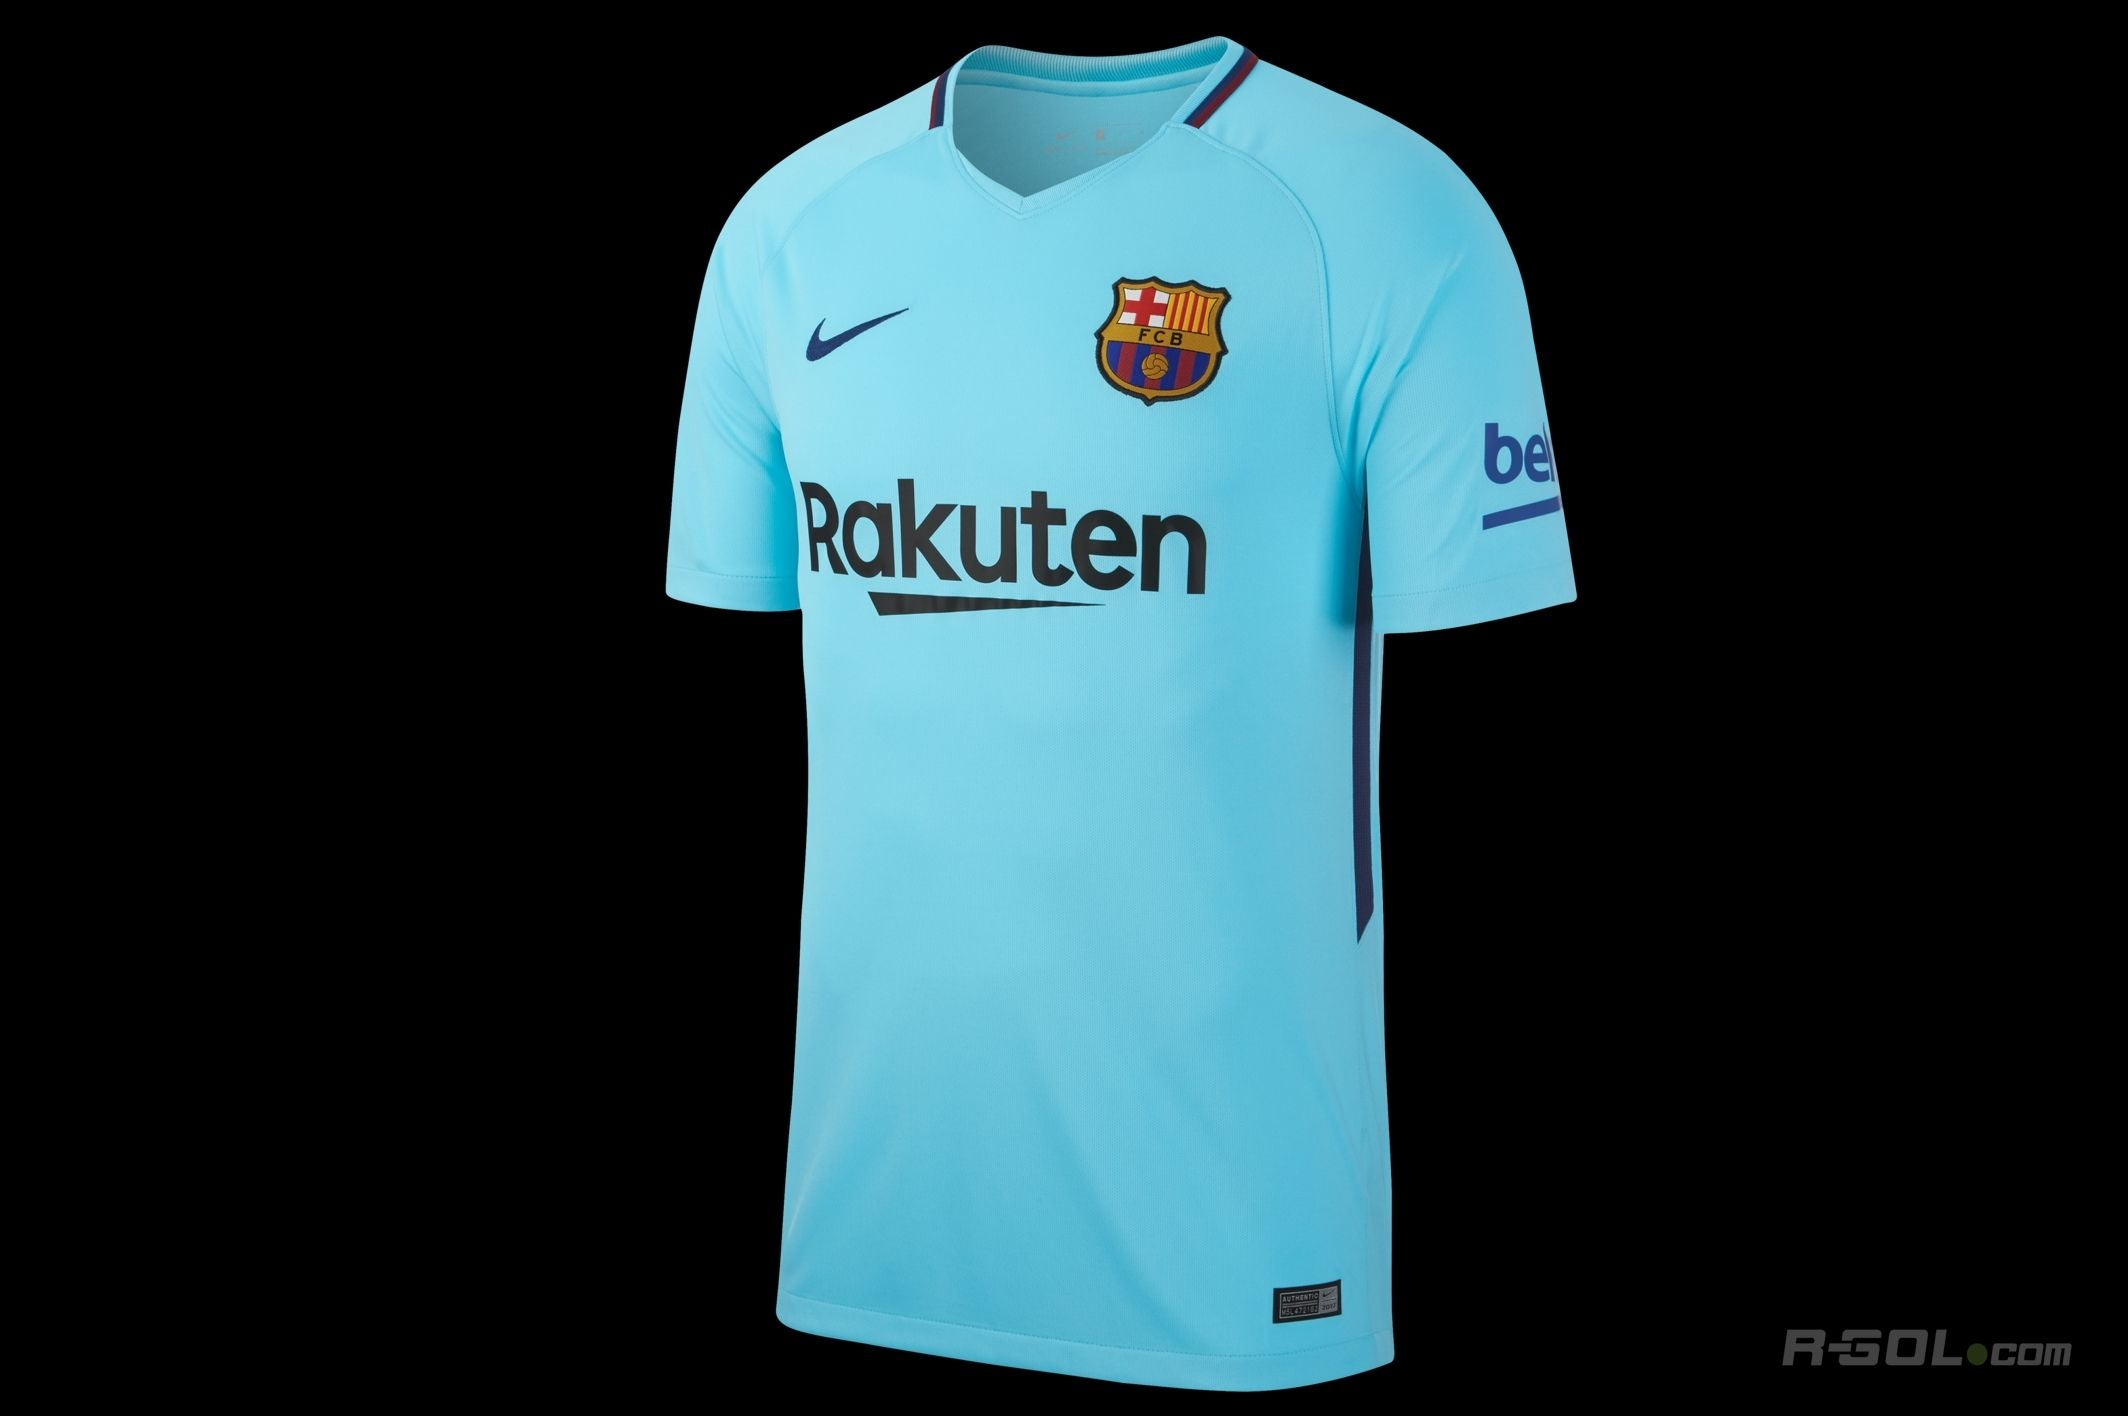 Youth Nike 2017-2018 Barcelona Away Nike Shirt     847386-484